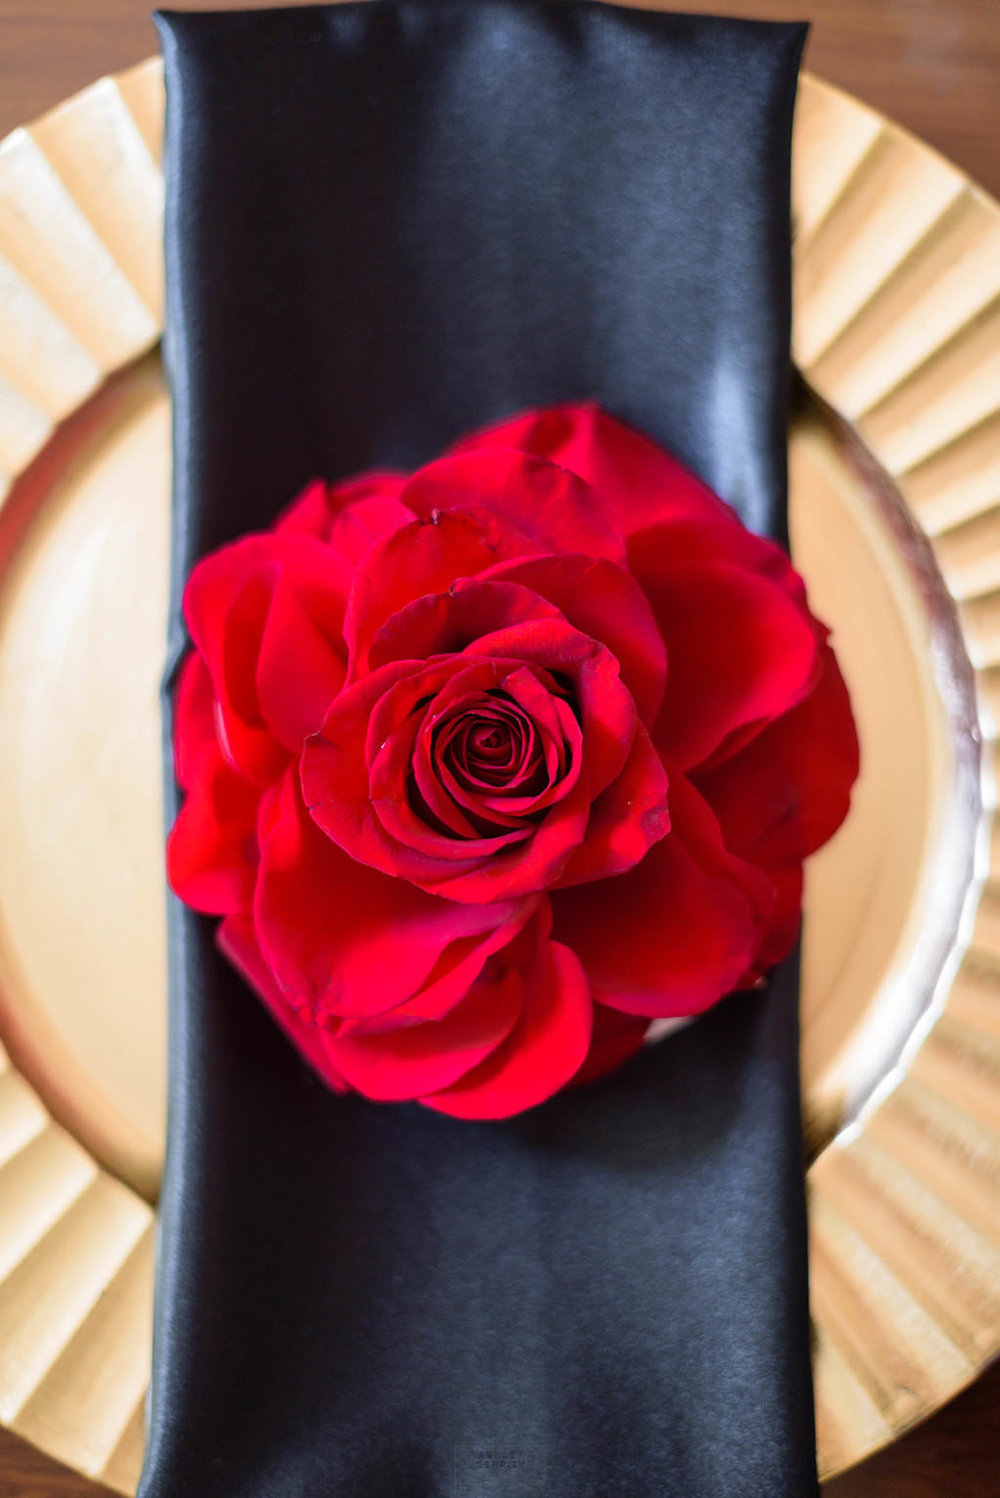 30 Giant Red Rose Blossom Place Card Spanish Rose Wedding.jpg